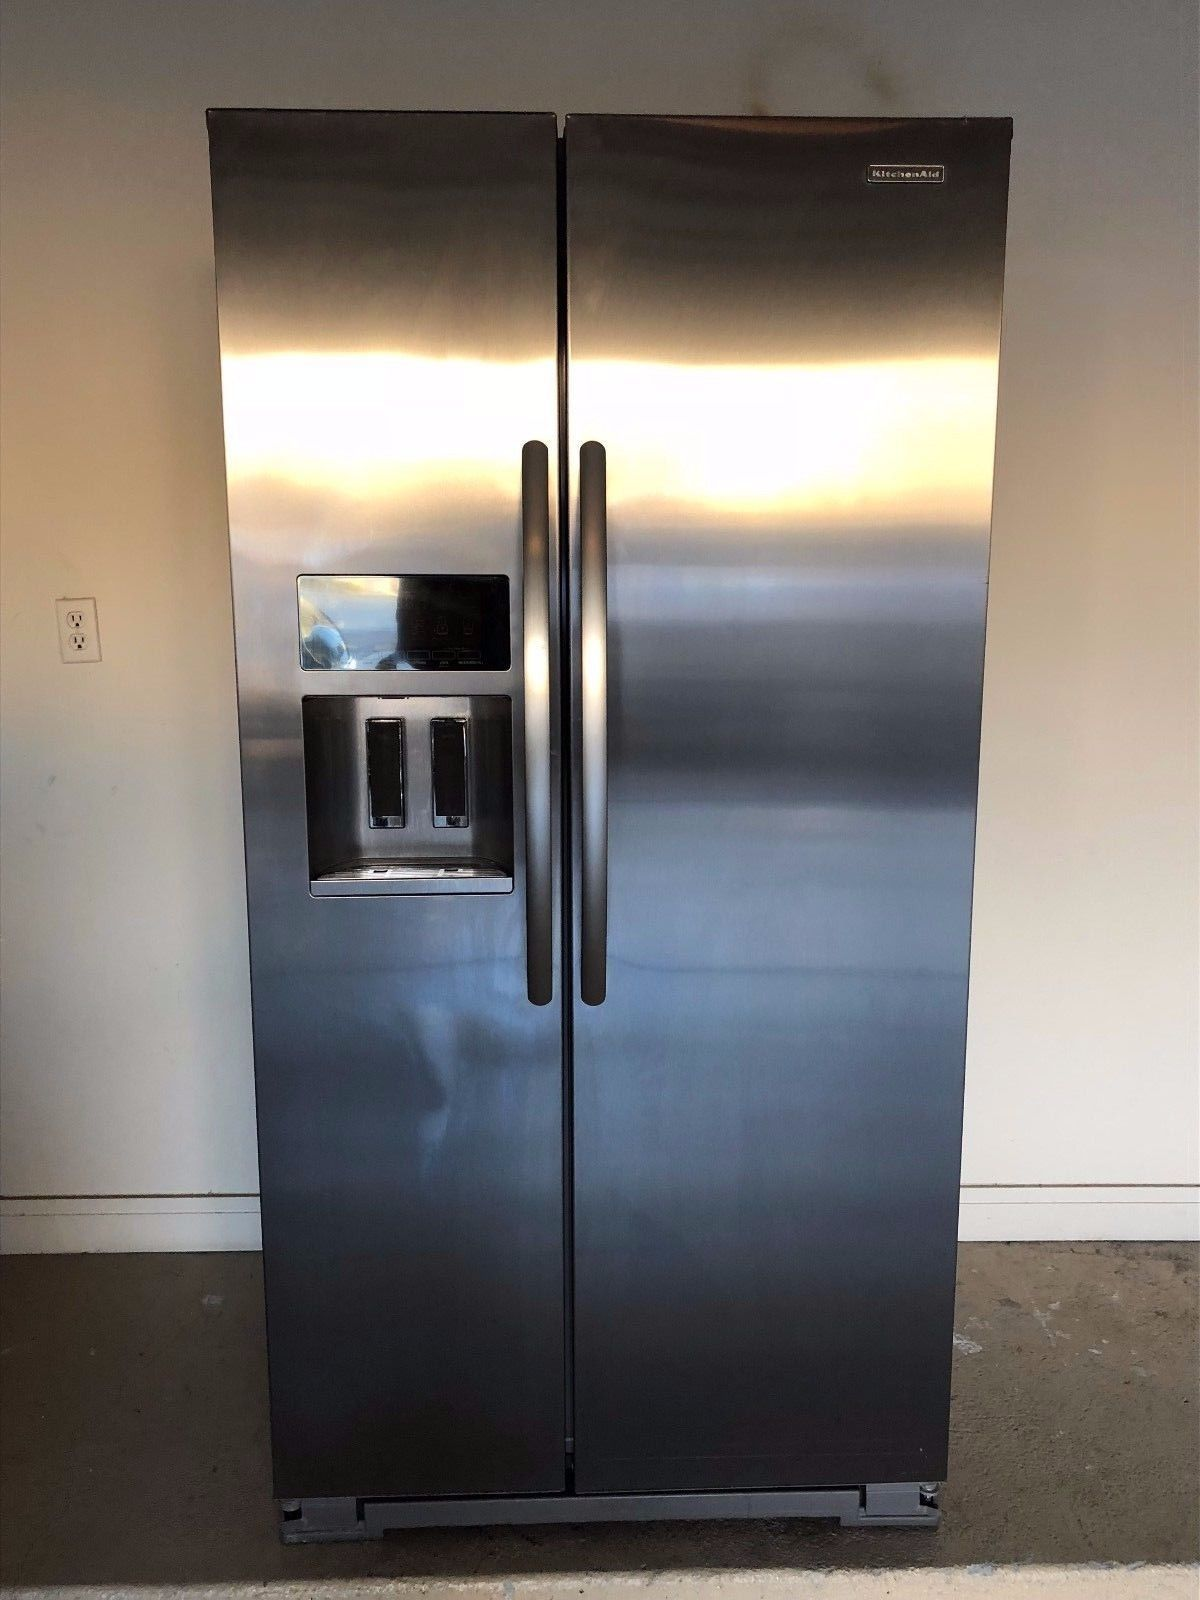 Kitchen Aid Refrigerator Stainless Side By Side With Ice Water Dispenser Kitchenaid Refrigerator Refrigerator Kitchen Aid